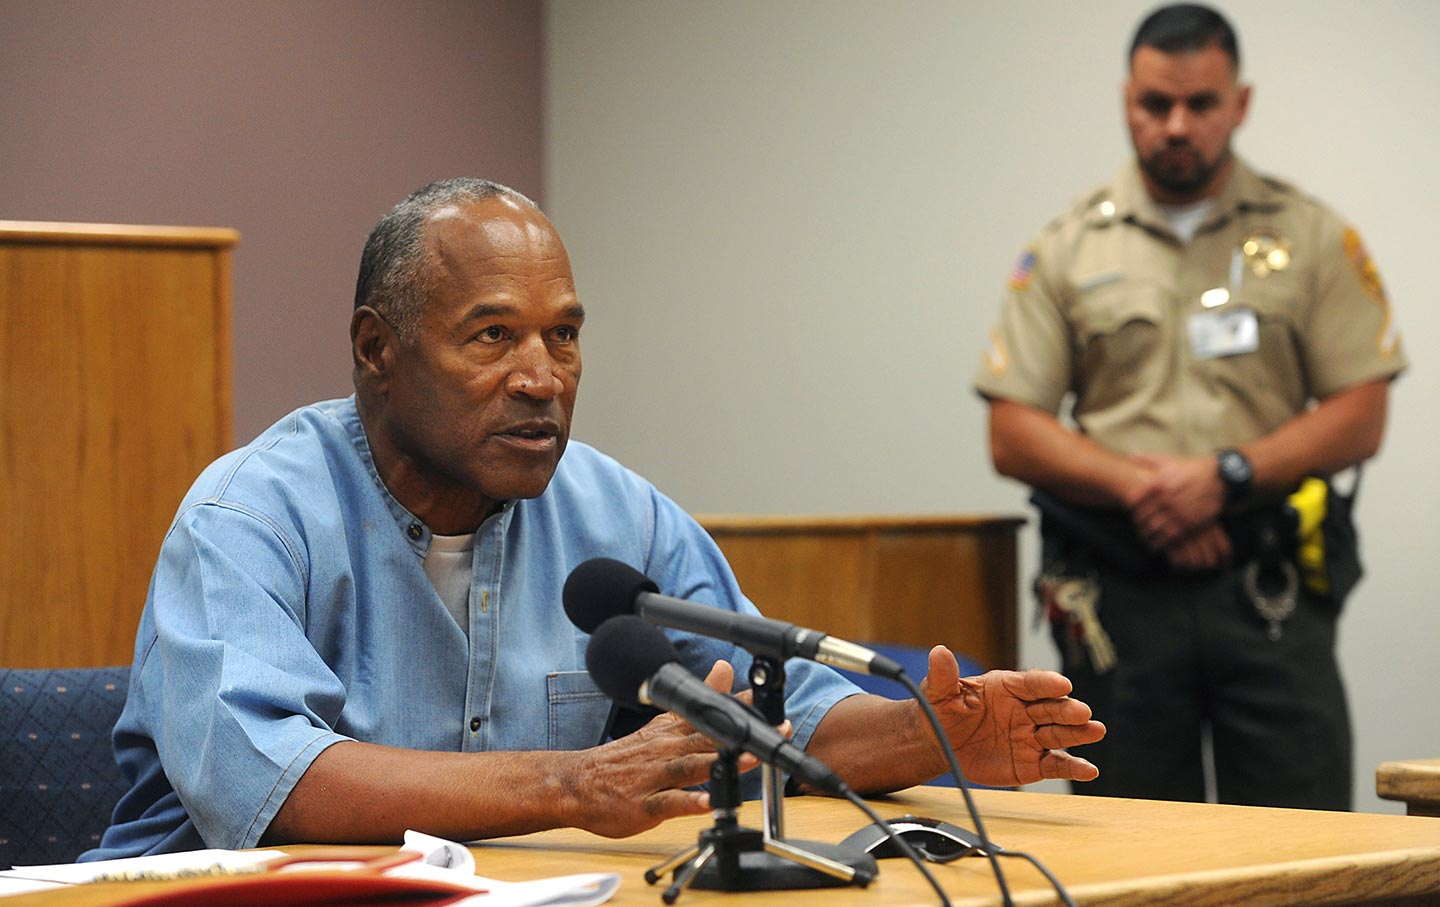 Former NFL football star O.J. Simpson appears for his parole hearing at the Lovelock Correctional Center in Lovelock, Nevada, on Thursday, July 20, 2017.